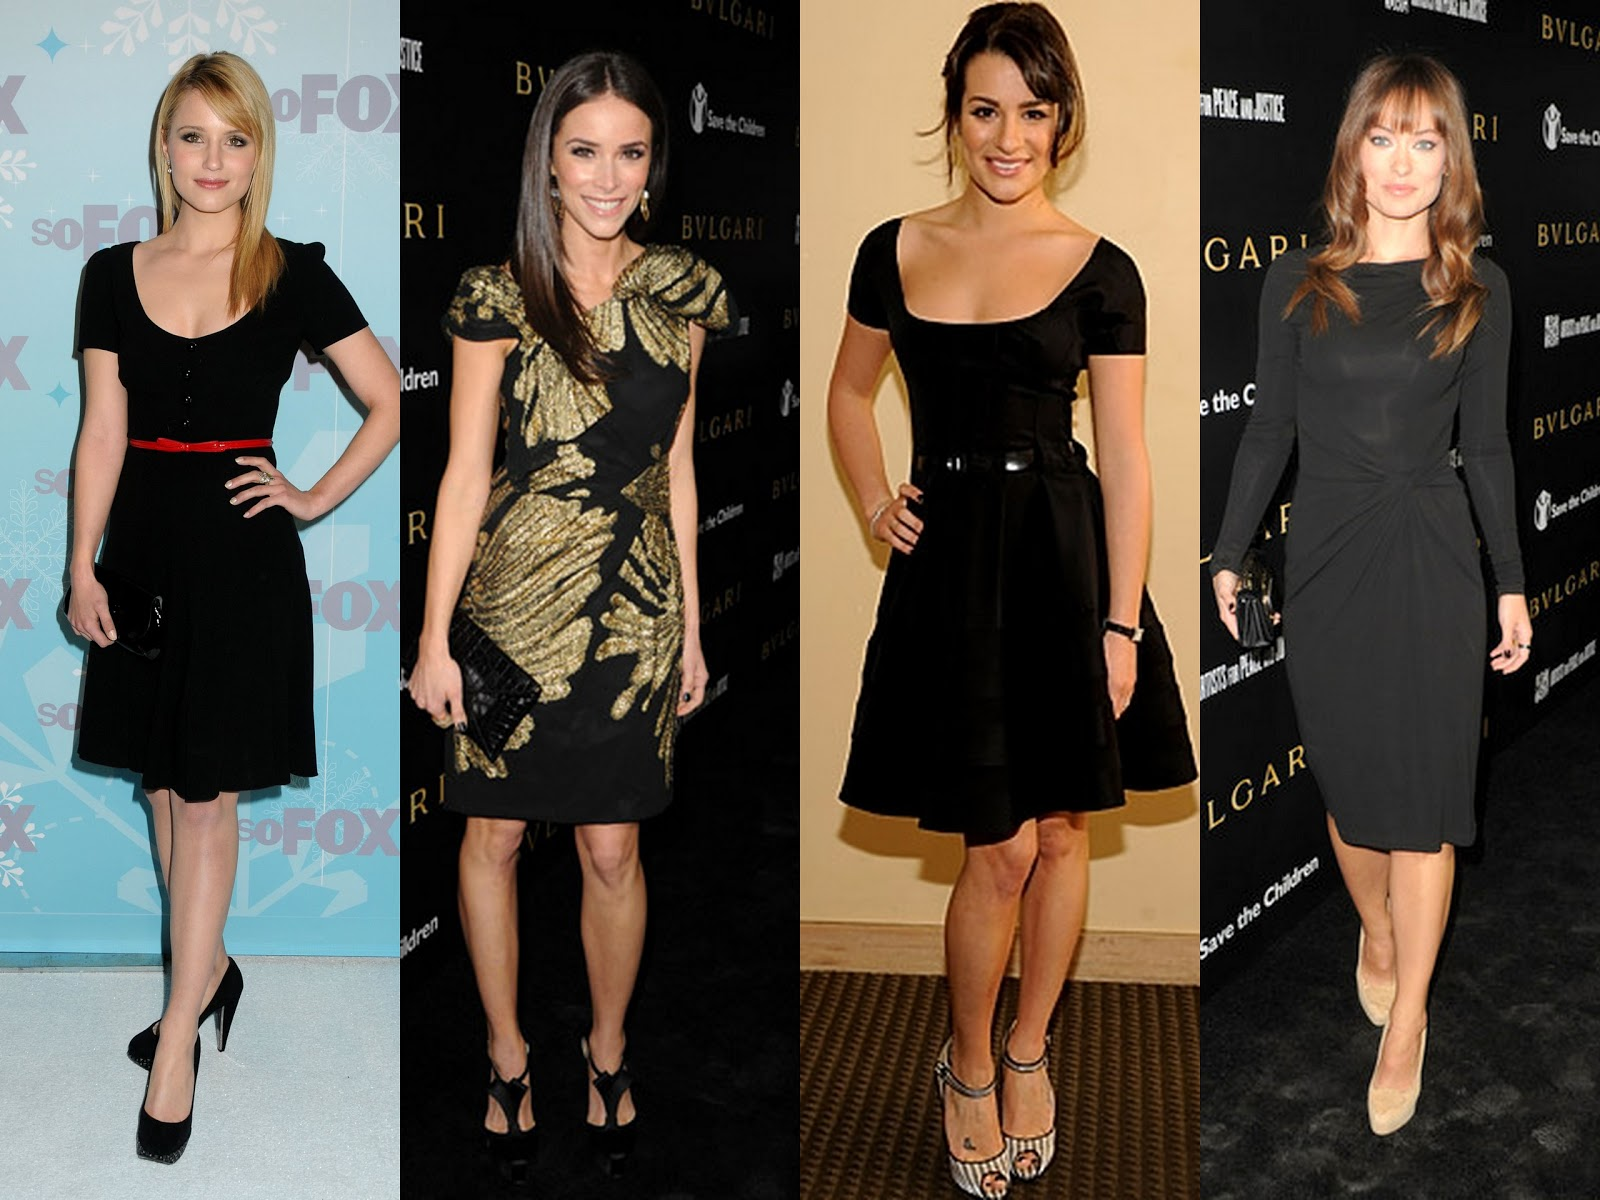 Here are some pretty little black dresses worn on the red carpet this